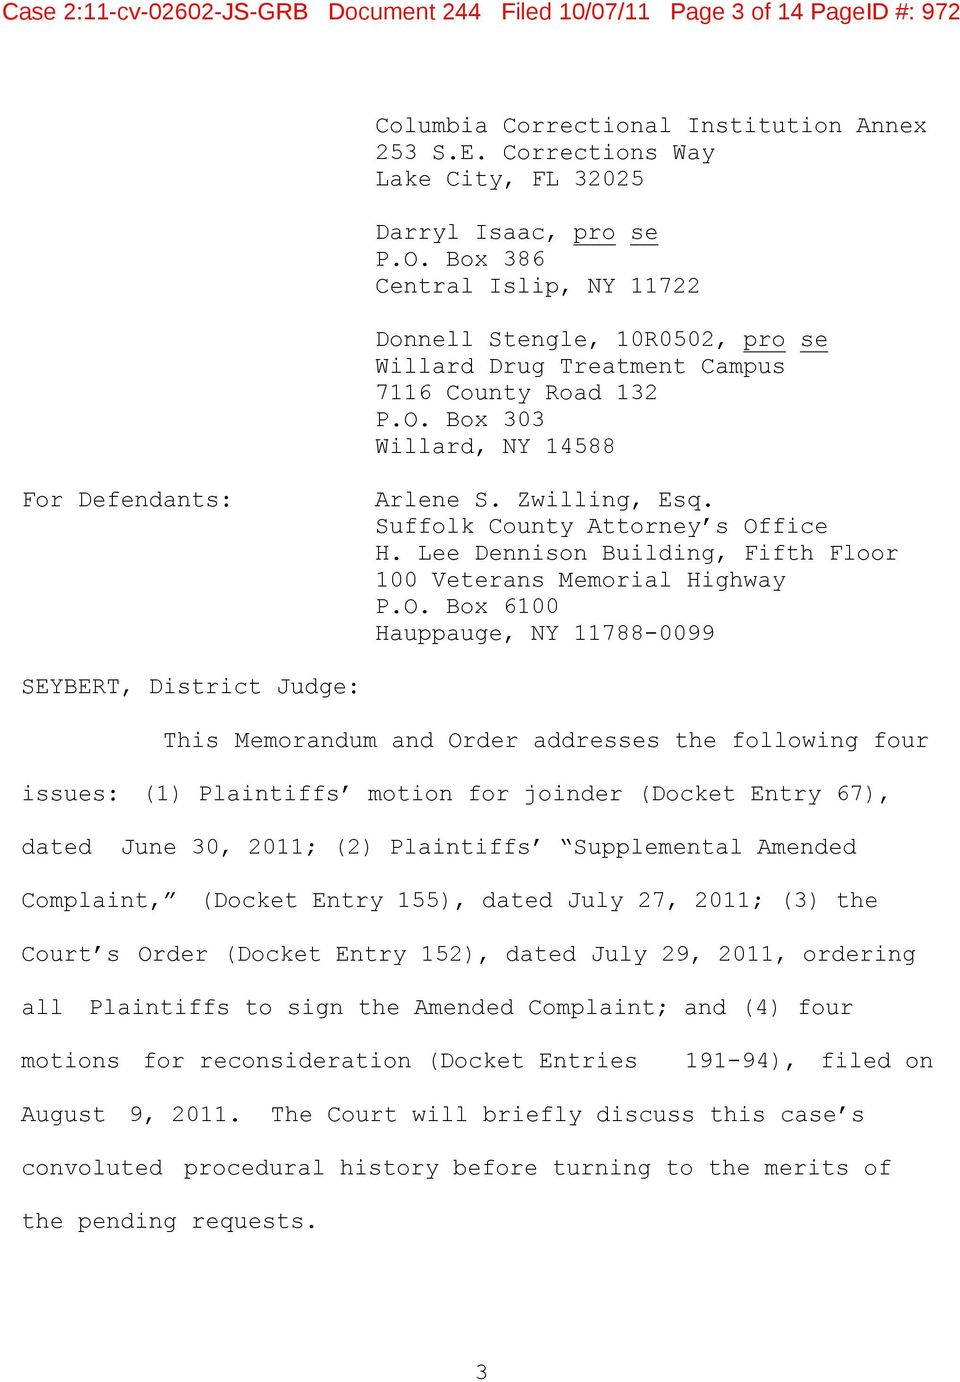 Case 2:11-cv JS-GRB Document 244 Filed 10/07/11 Page 1 of 14 PageID